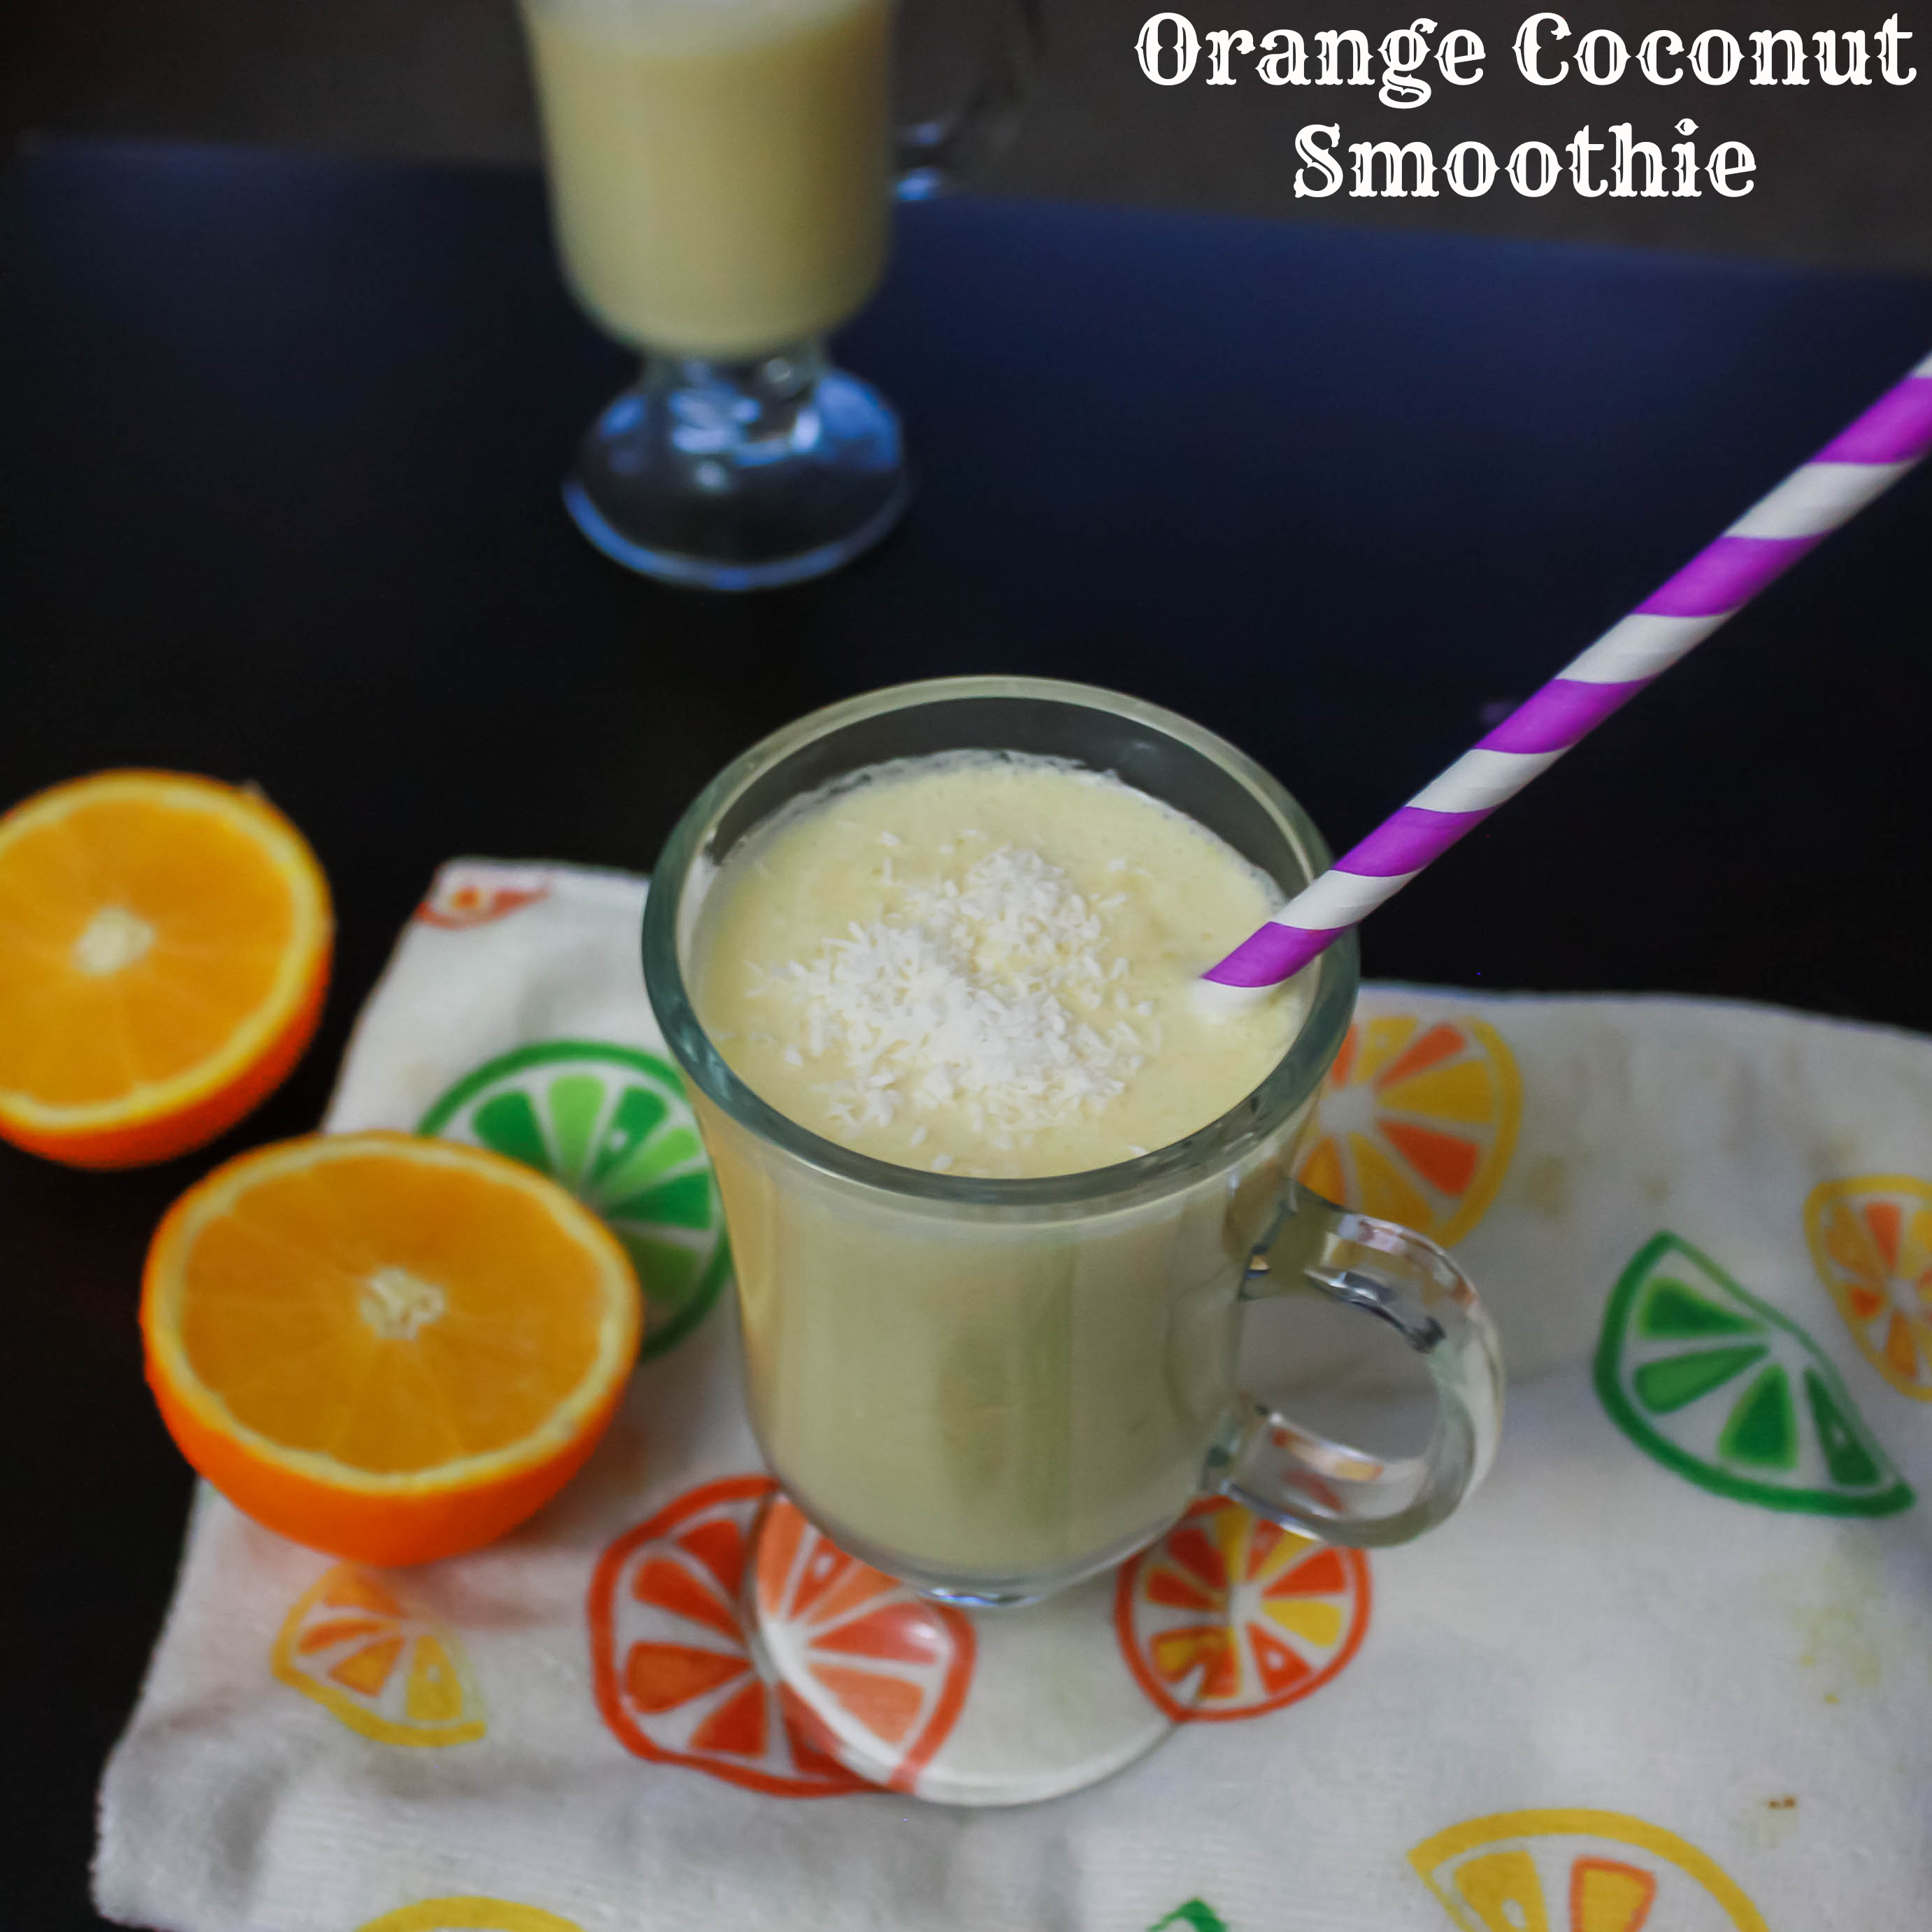 Orange Coconut_Smoothie_1pic_Relishthebite-2-2